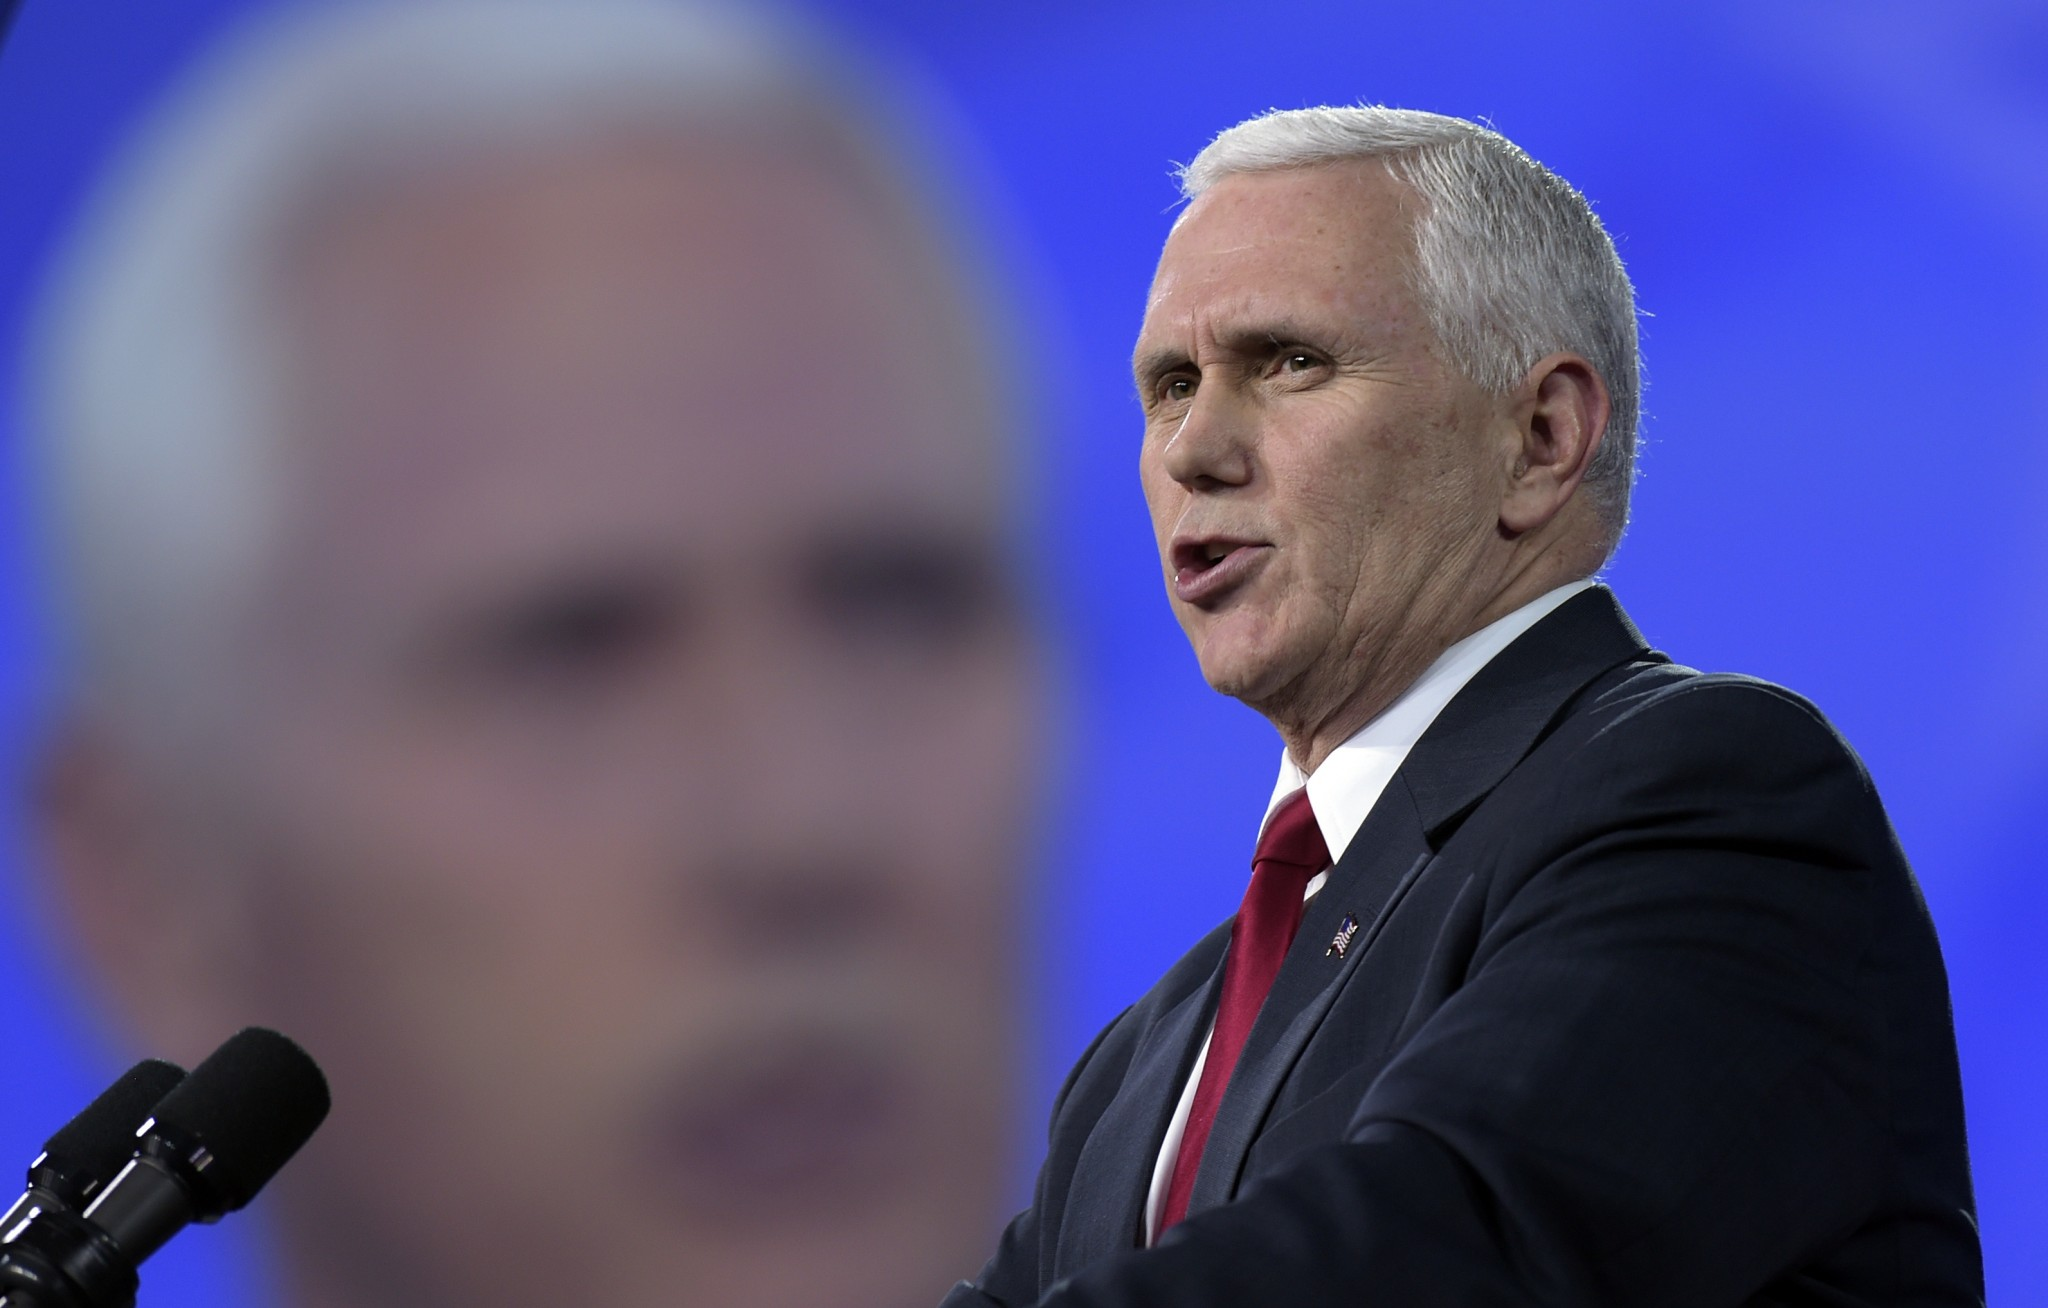 Vice President Pence downplays concerns over disruptions to health care